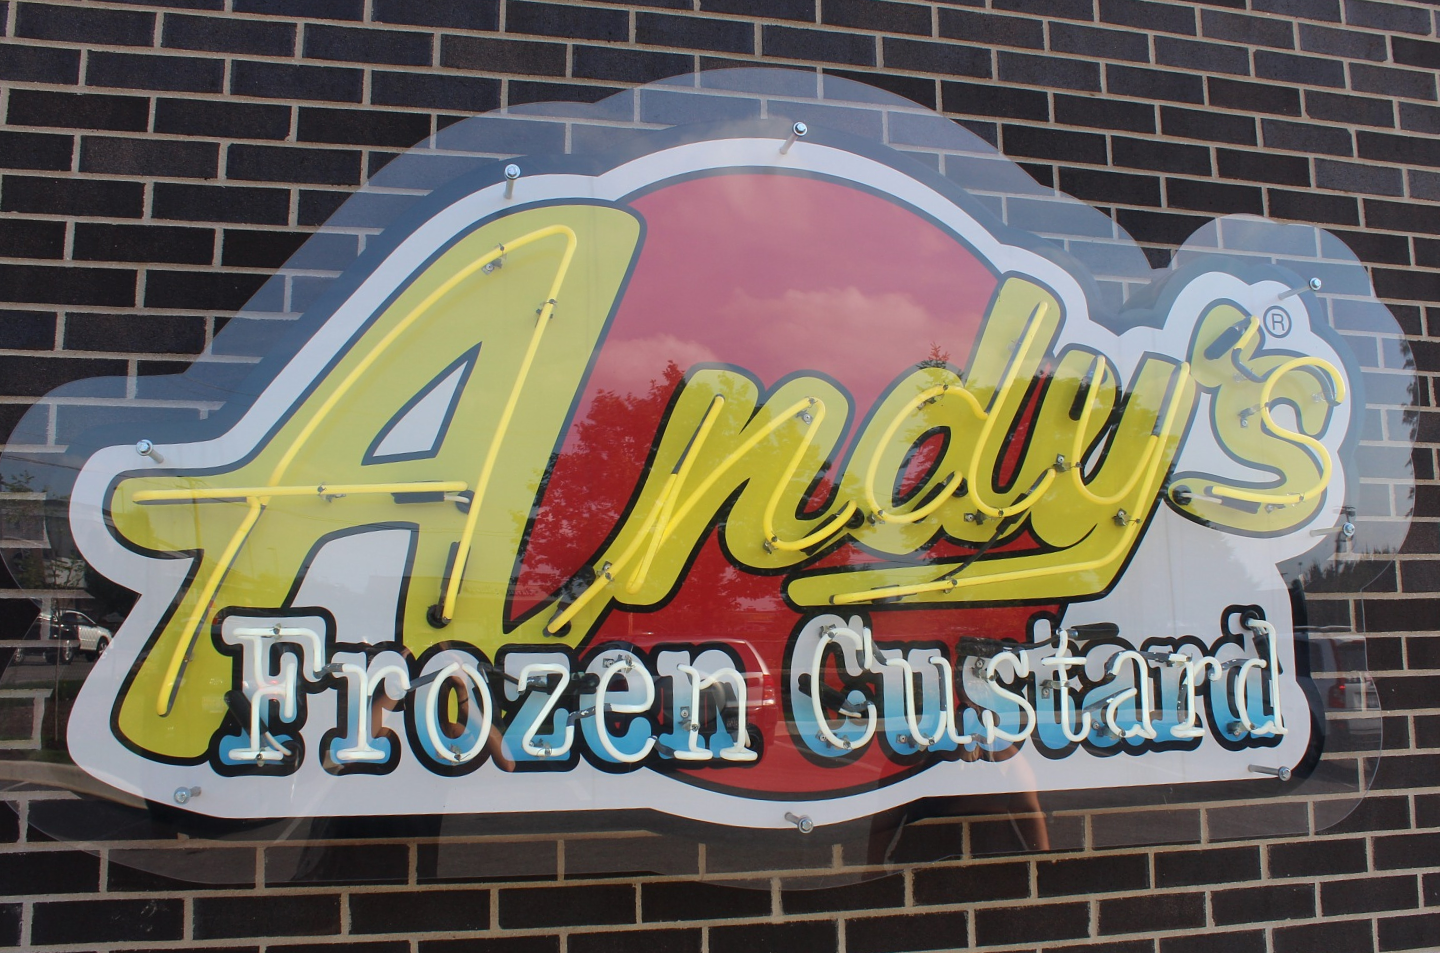 Andy's Frozen Custard is now an SHS hangout.